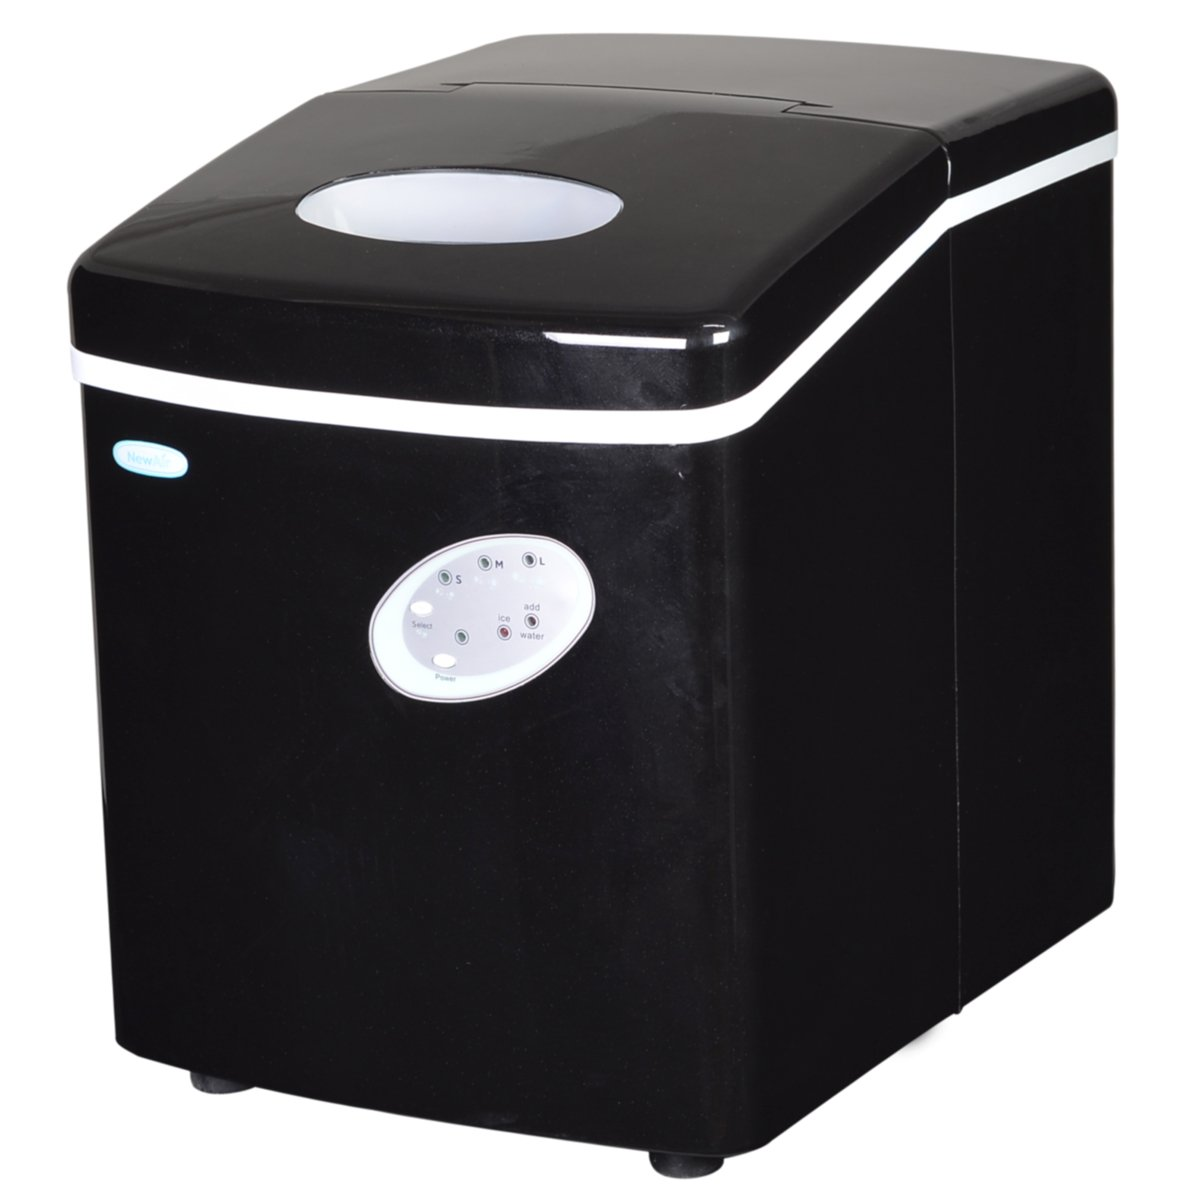 Newair Ai-100Bk 28-Pound Portable Ice Maker Black 20